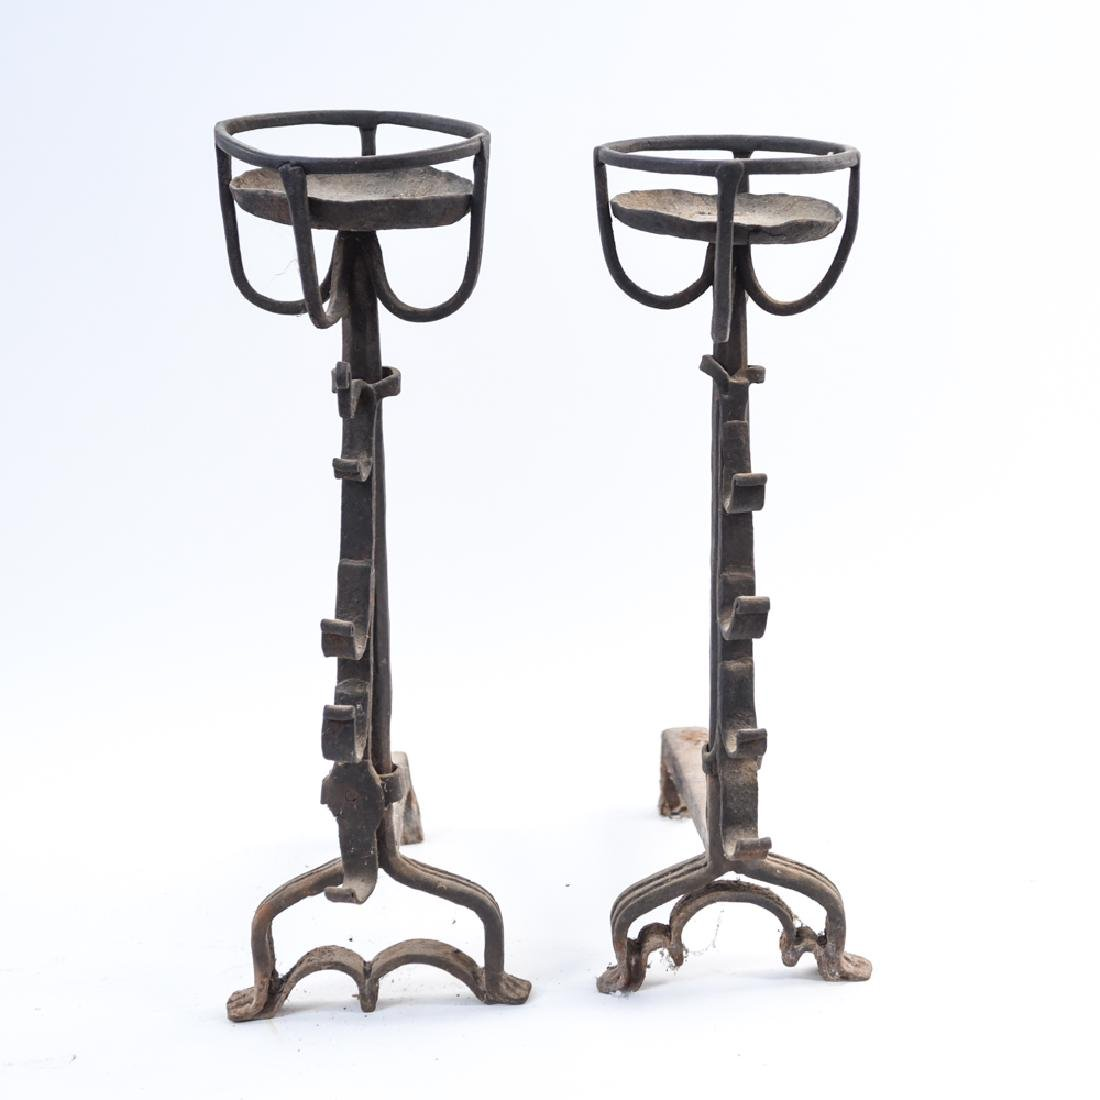 PAIR OF WROUGHT IRON CANDLE STAND ANDIRONS